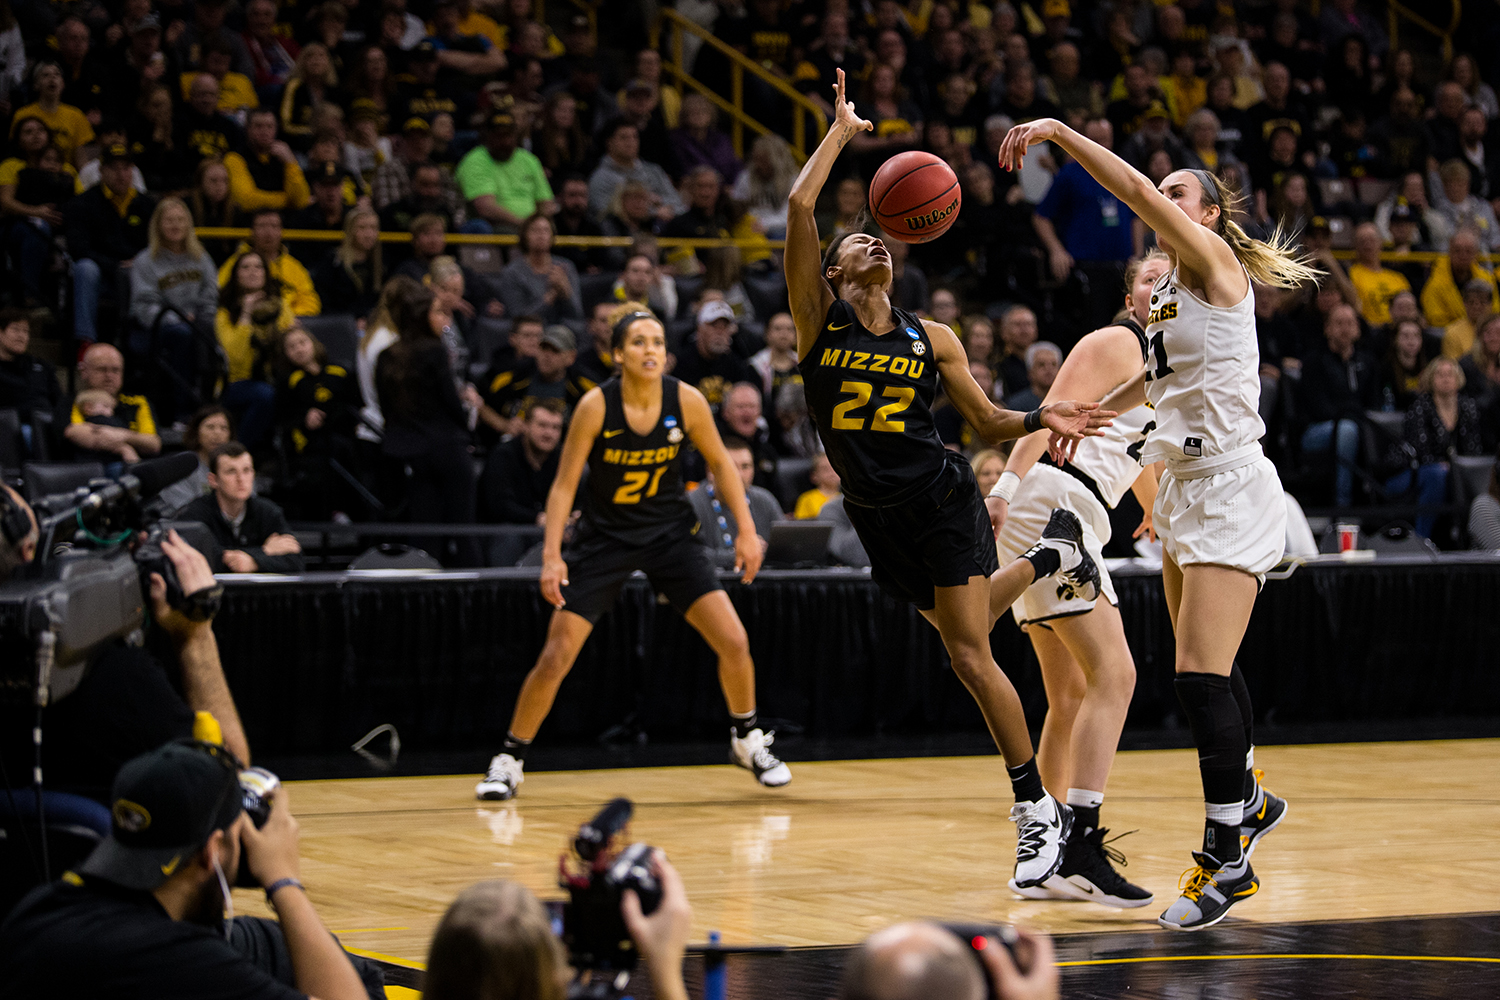 Iowa+forward+Hannah+Stewart+%2821%29+denies+a+shot+during+the+Iowa%2FMissouri+NCAA+Tournament+second+round+women%E2%80%99s+basketball+game+in+Carver-Hawkeye+Arena+in+Iowa+City%2C+Iowa+on+Sunday%2C+March+24%2C+2019.+The+Hawkeyes+defeated+the+Tigers+68-52.